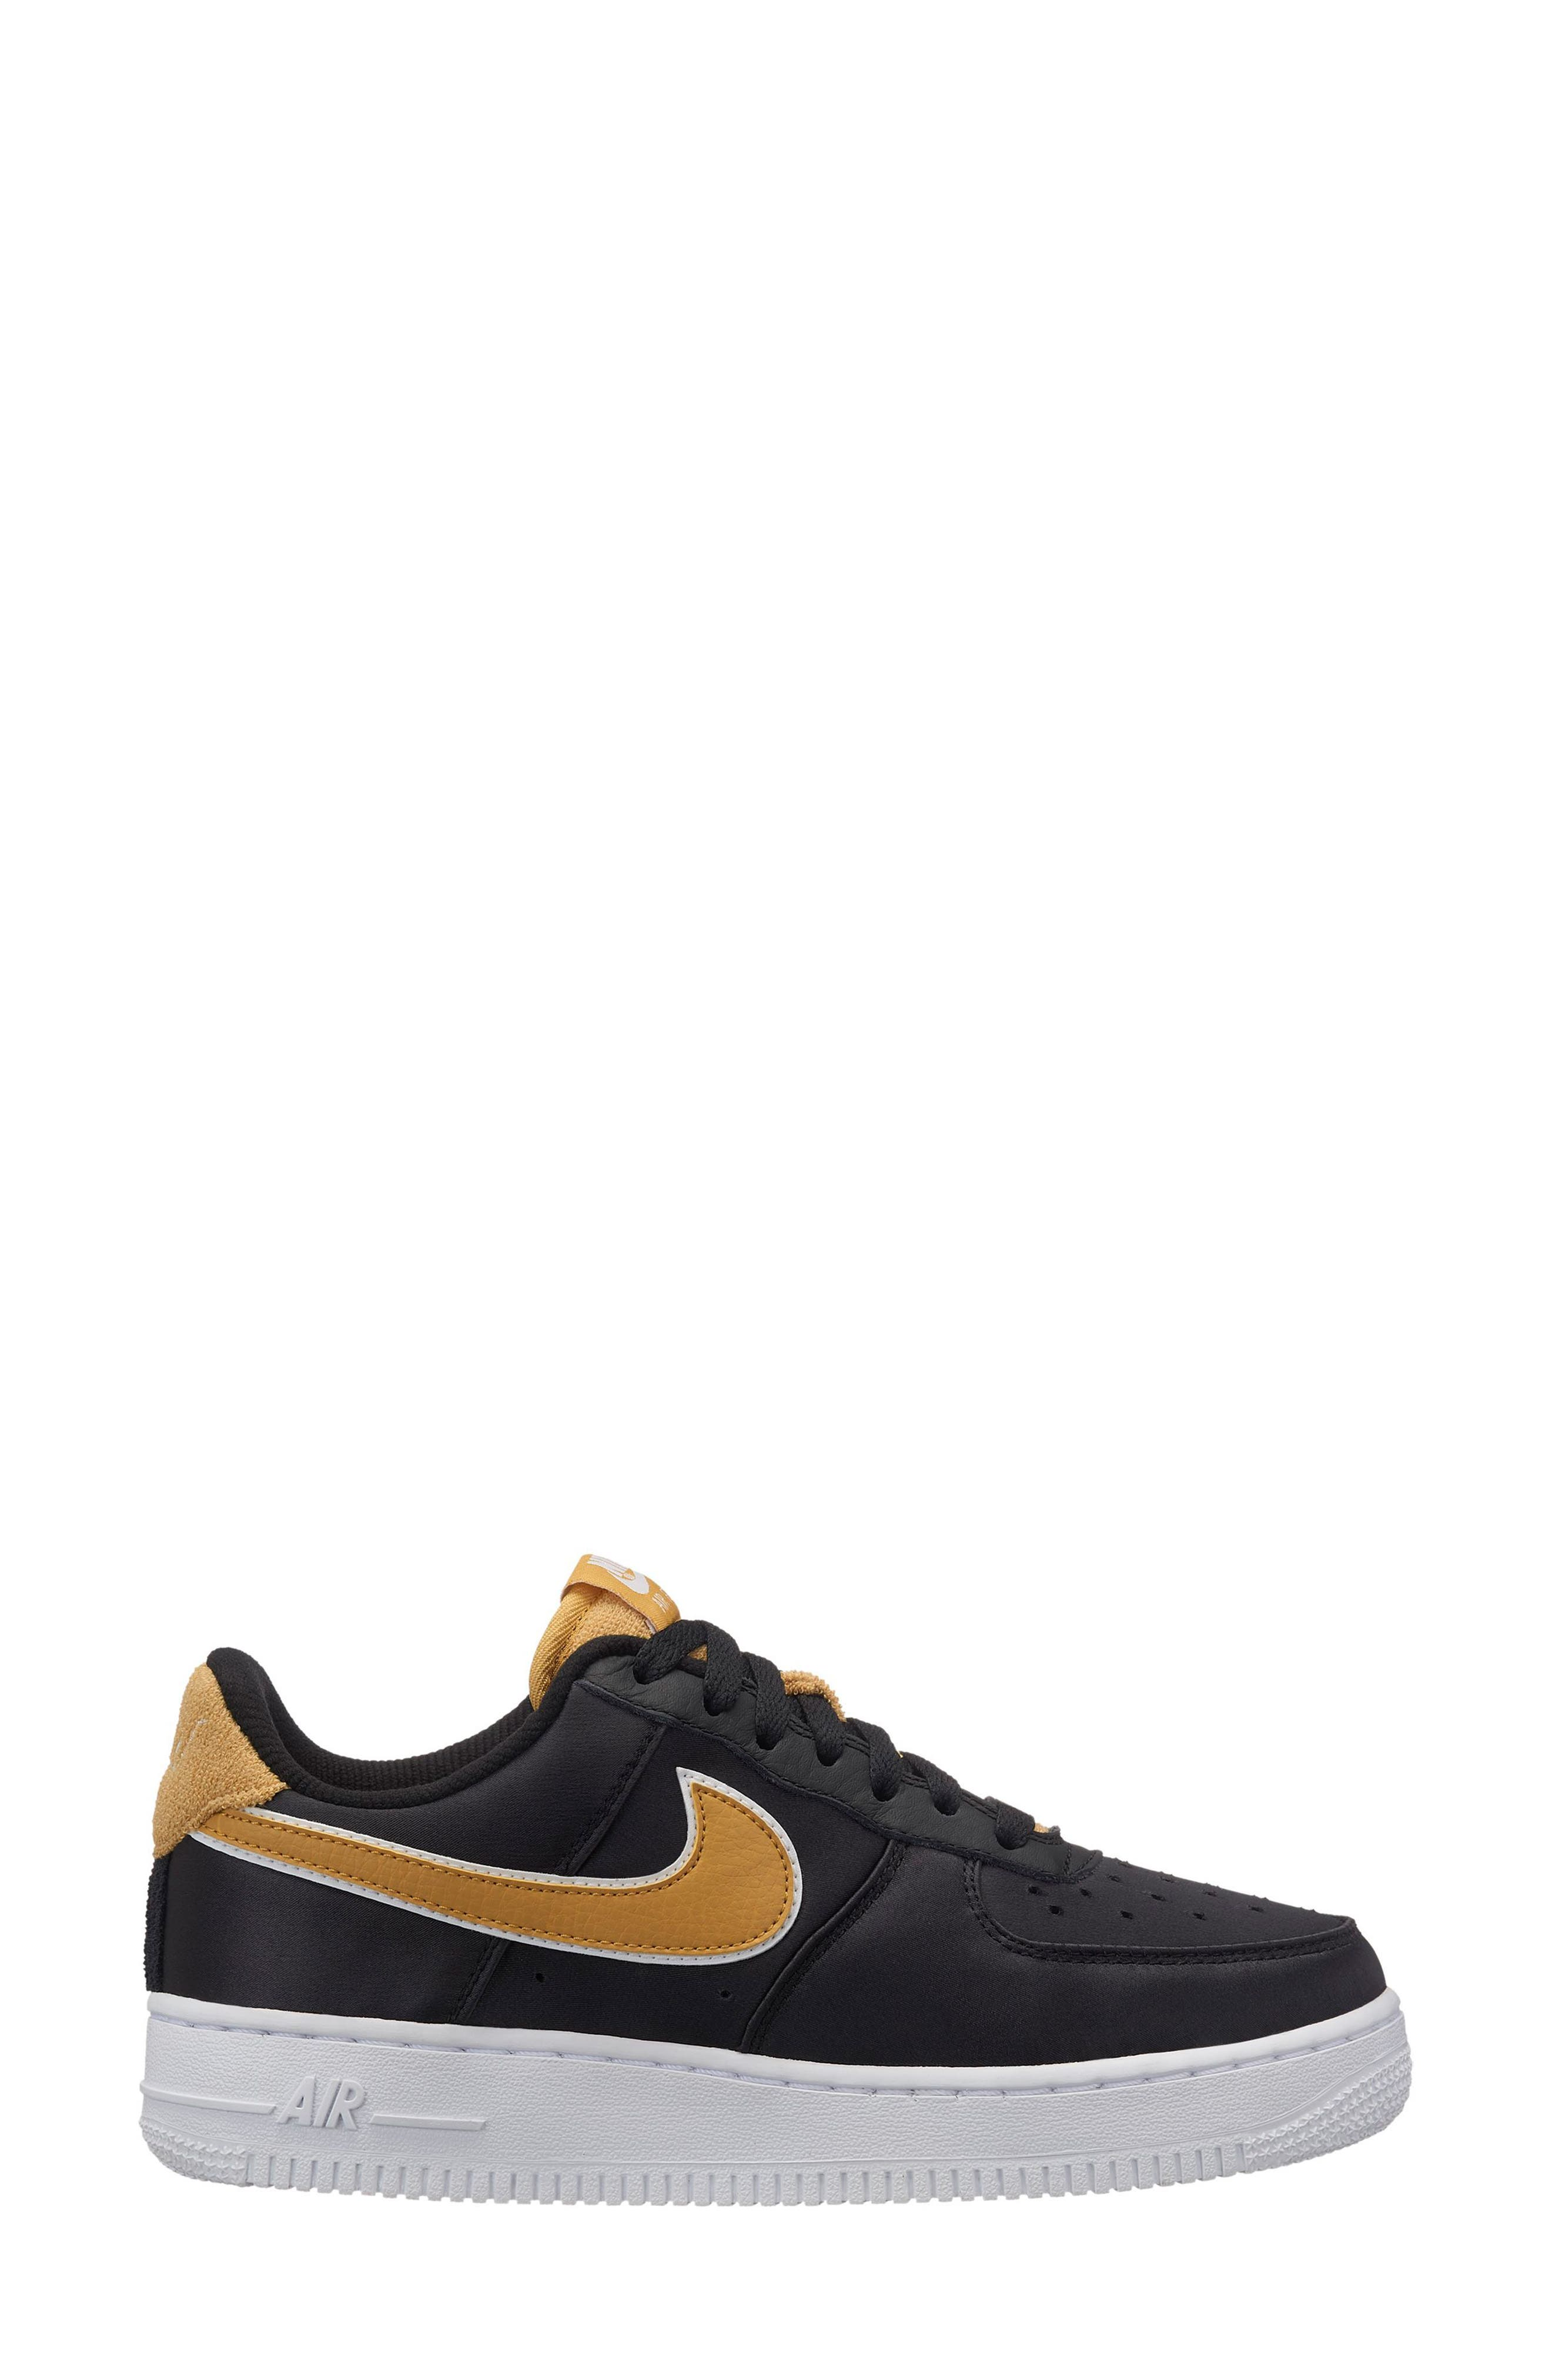 Nike Air Force 1  07 Se Sneaker In Black  Wheat Gold-White  a72c4da7d